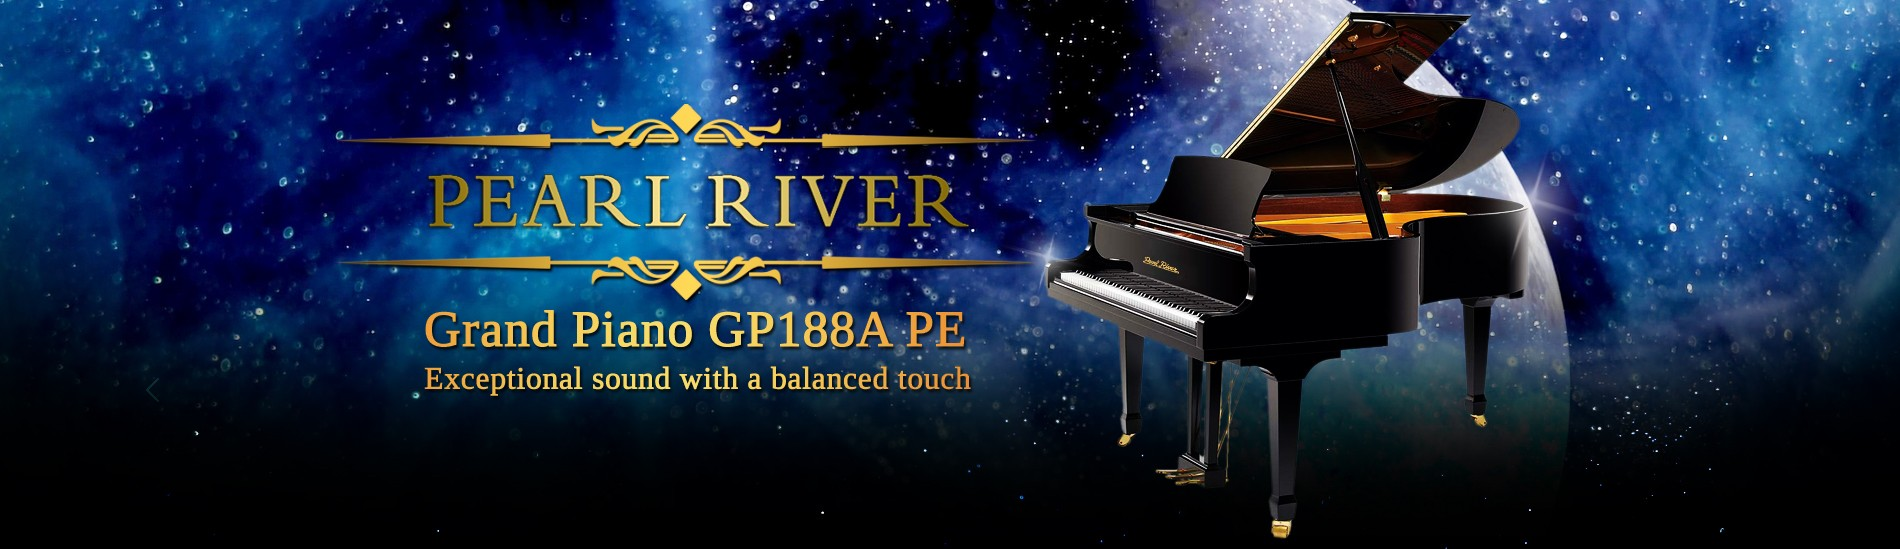 Grand Piano Pearl River GP188A PE - Exceptional sound with a balanced touch